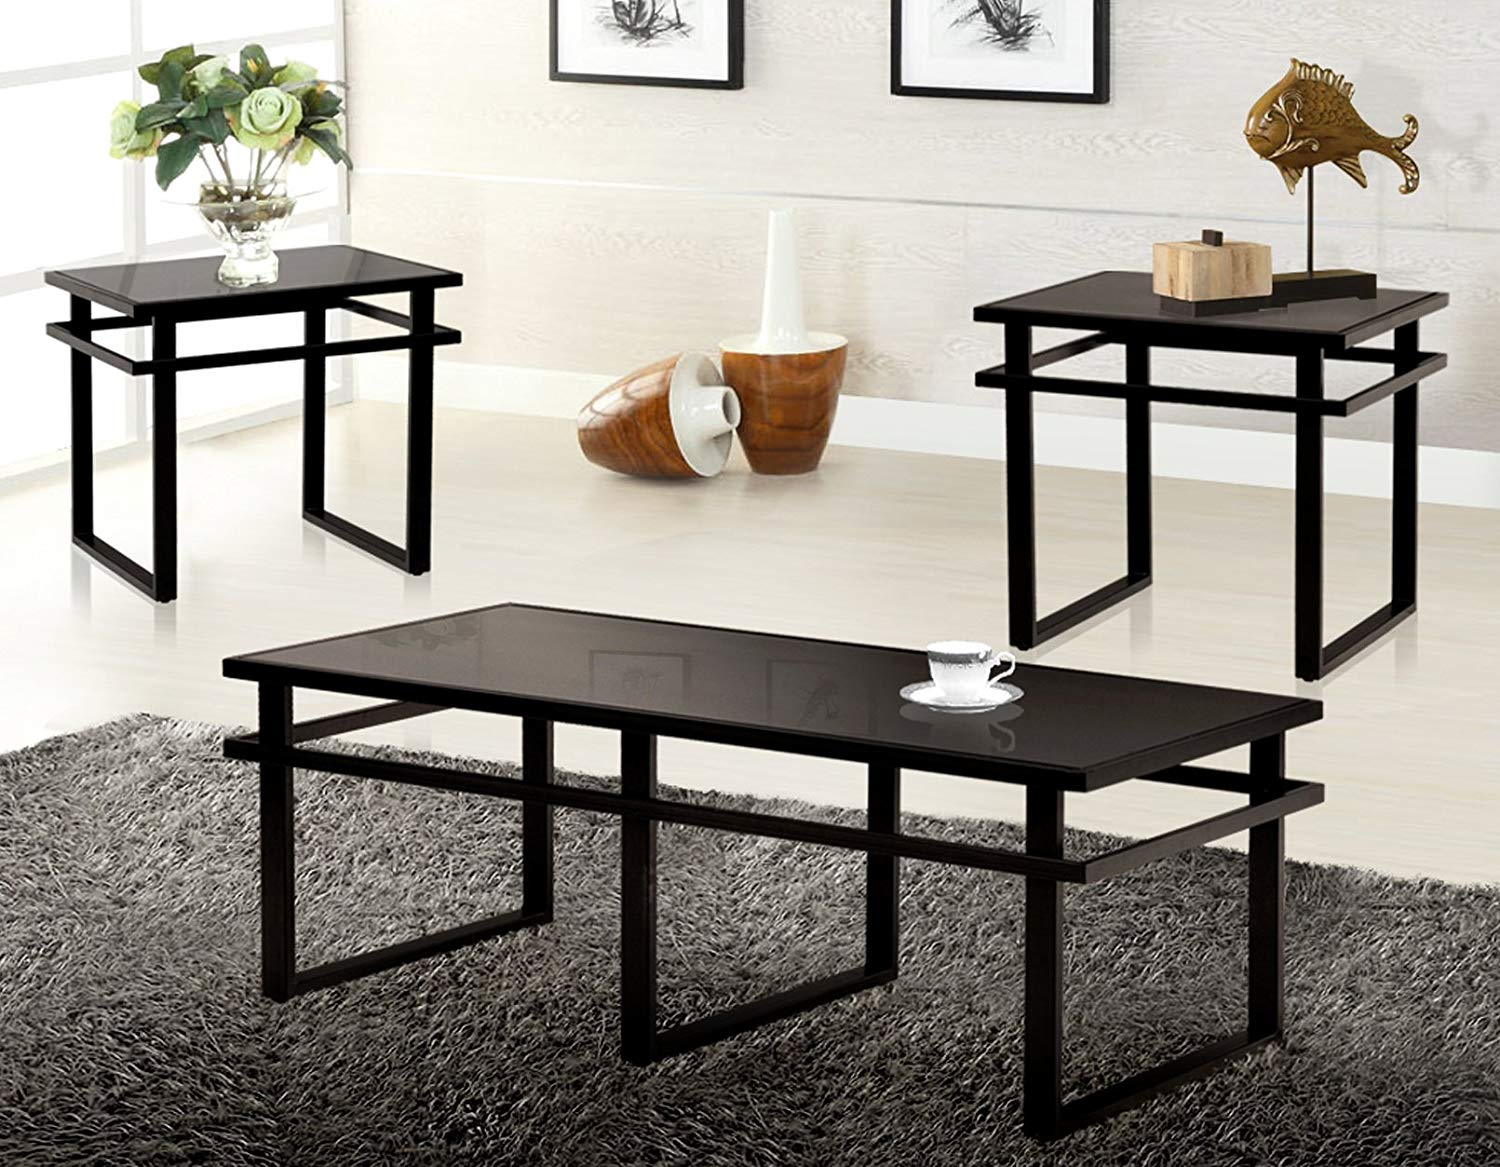 Picture of: Cheap Black Glass Coffee Table Set Find Black Glass Coffee Table Set Deals On Line At Alibaba Com